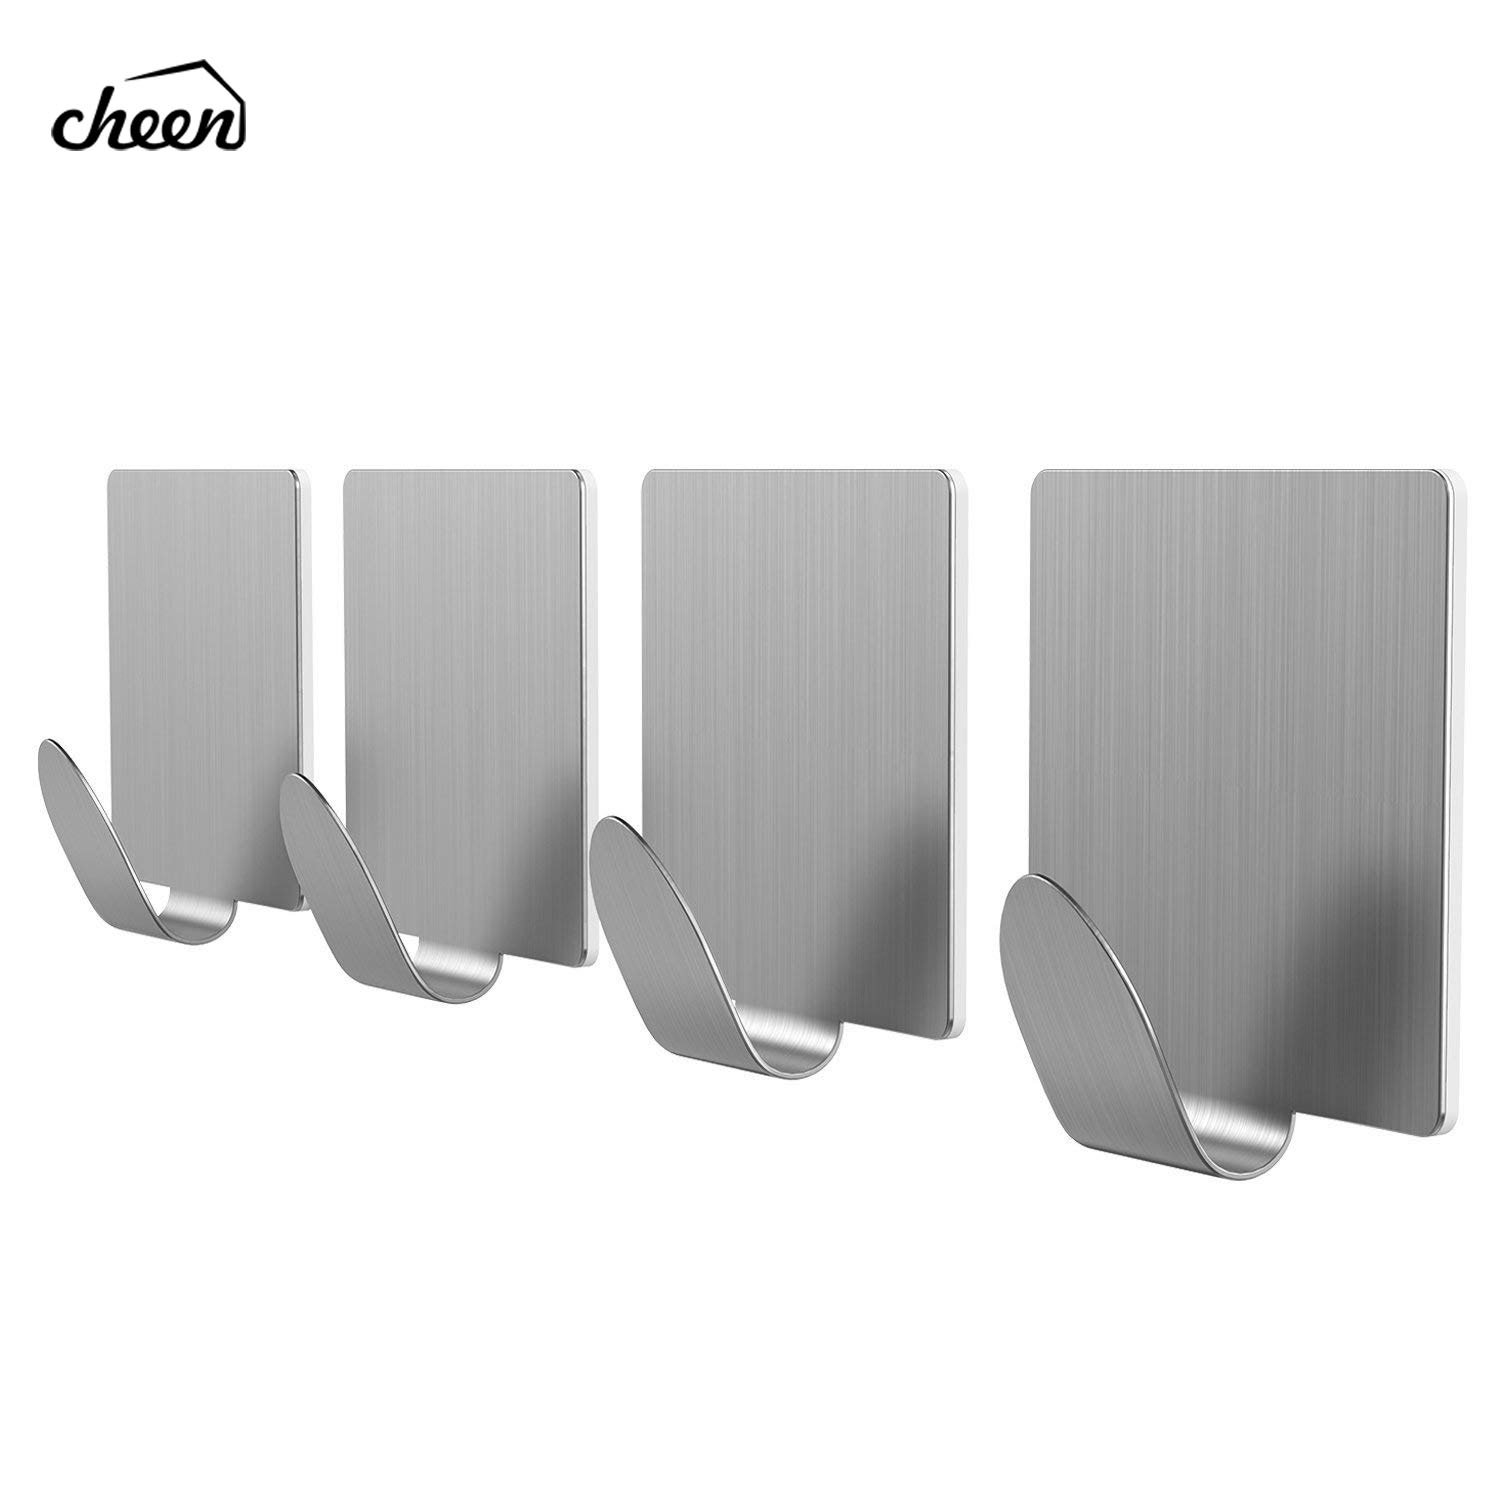 4pcs Brushed Stainless Steel Wall Hook Kitchen SelfAdhesive Hooks For Hanging Tools Suction Cup Coat Hanger Bathroom Accessories